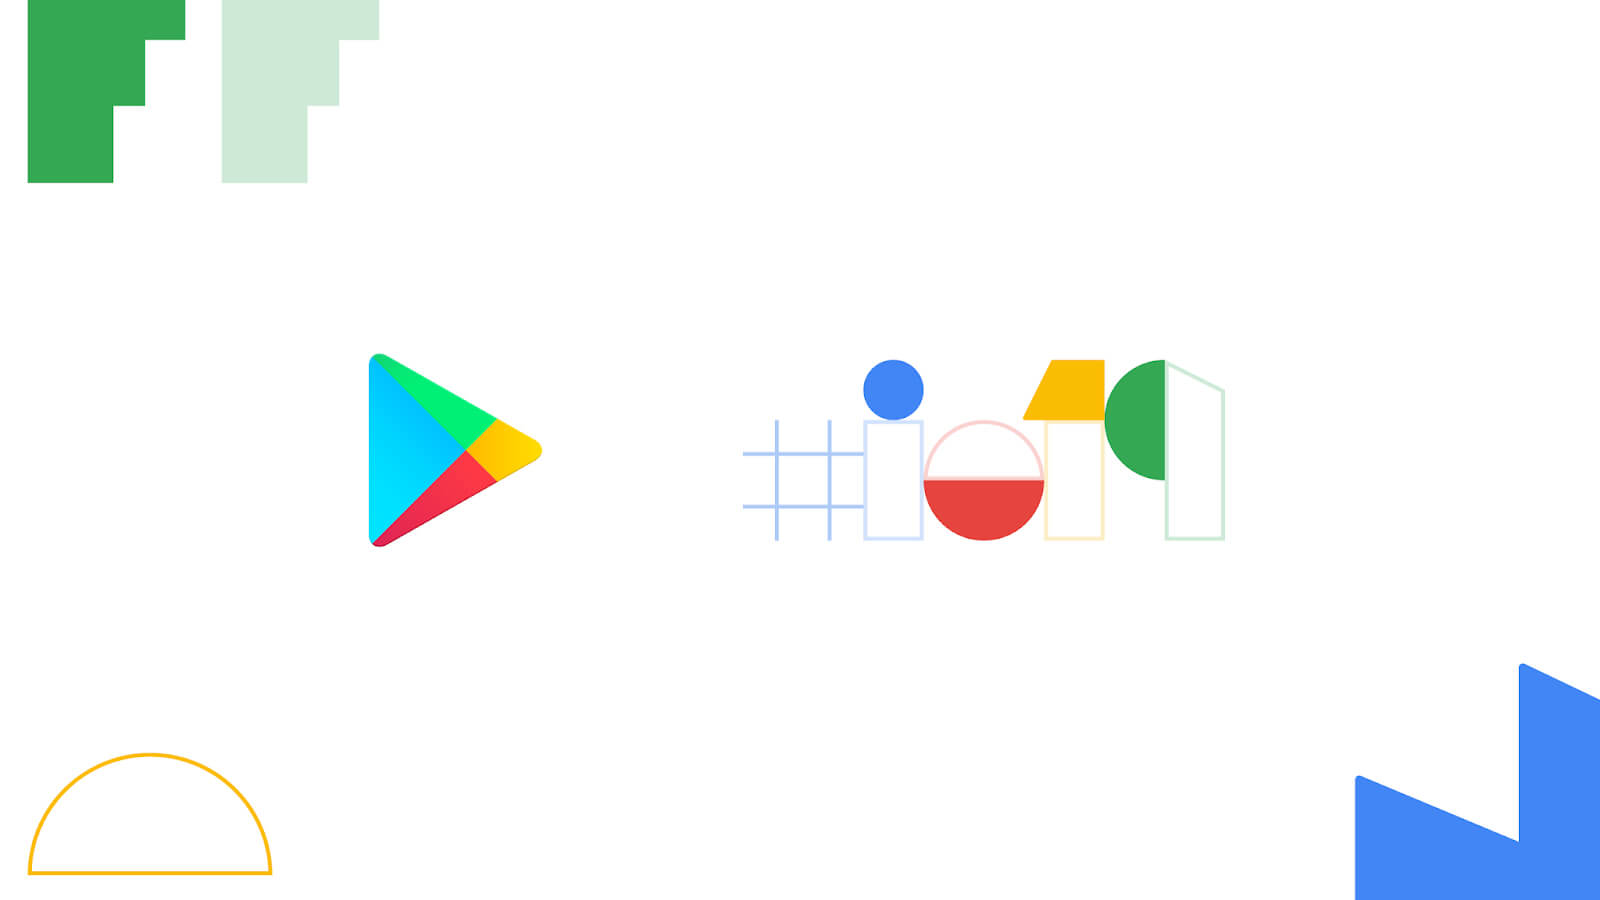 Google is tweaking the Play Store's app rating system to favor recent reviews